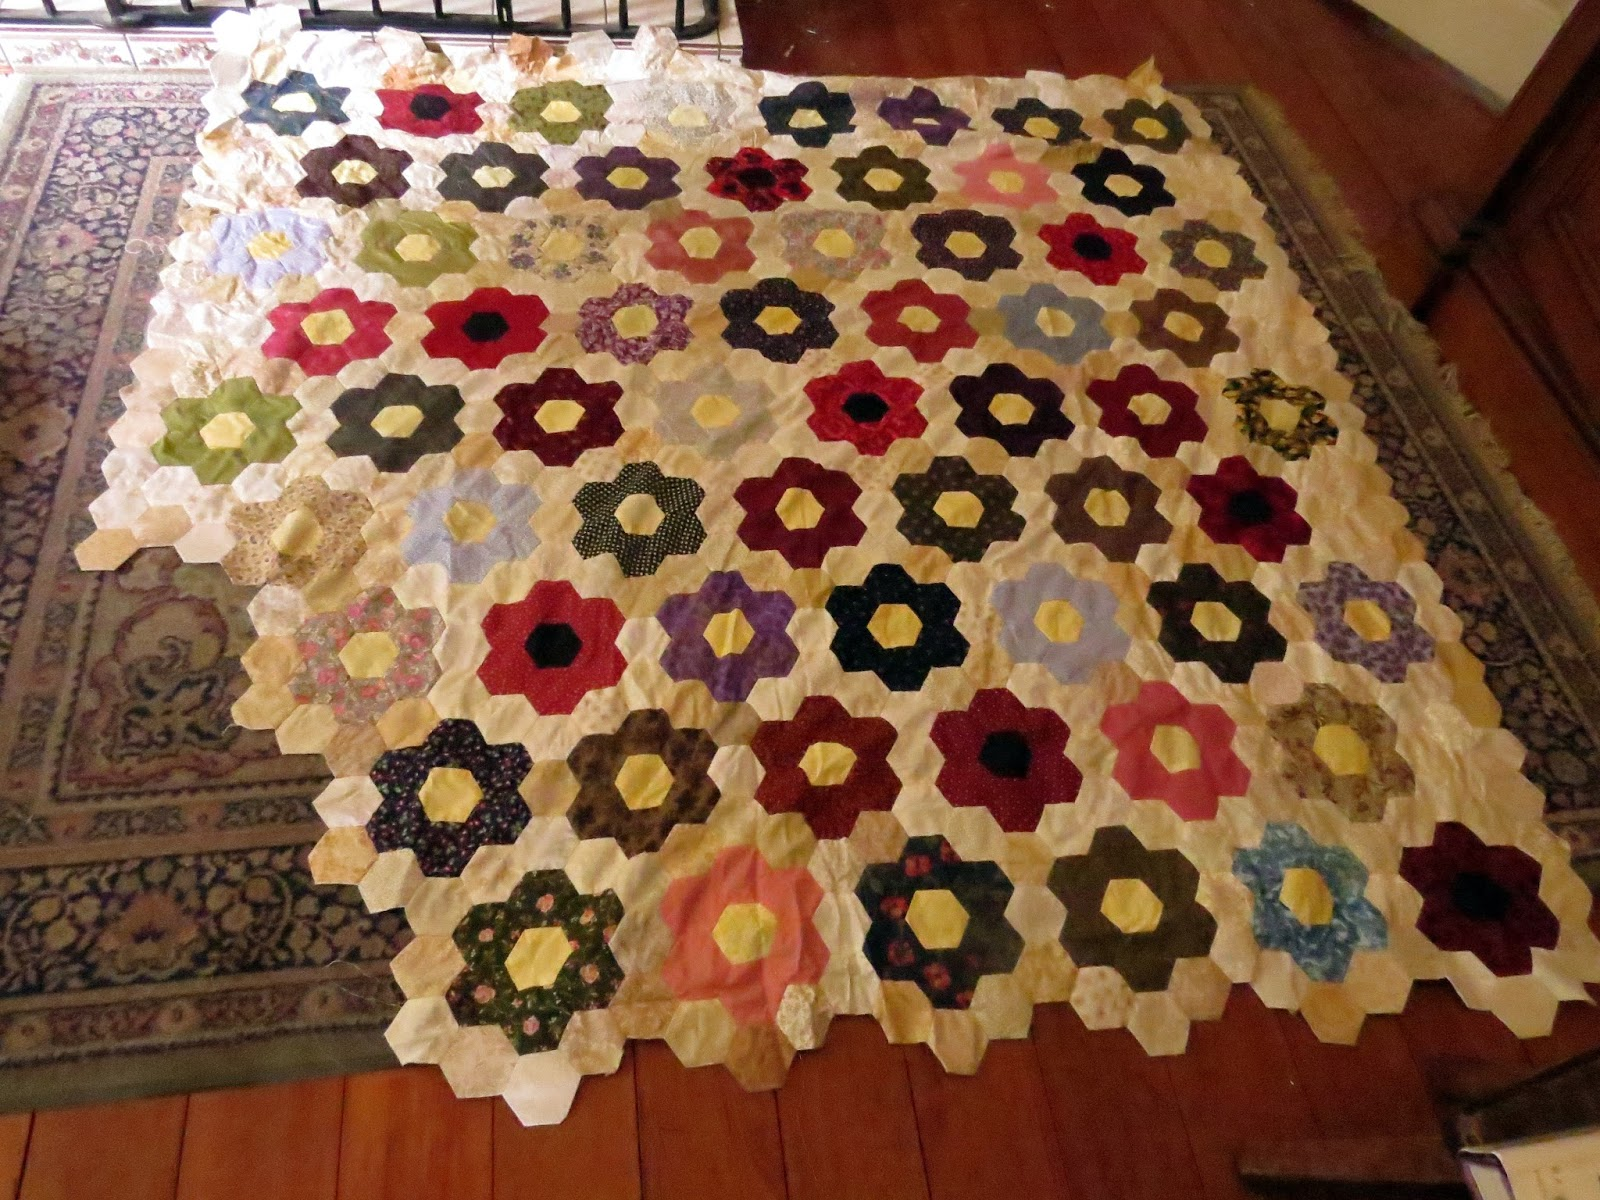 Beekeeper S Quilt Knitting Patterns : Cottage tails the beekeeper s quilt